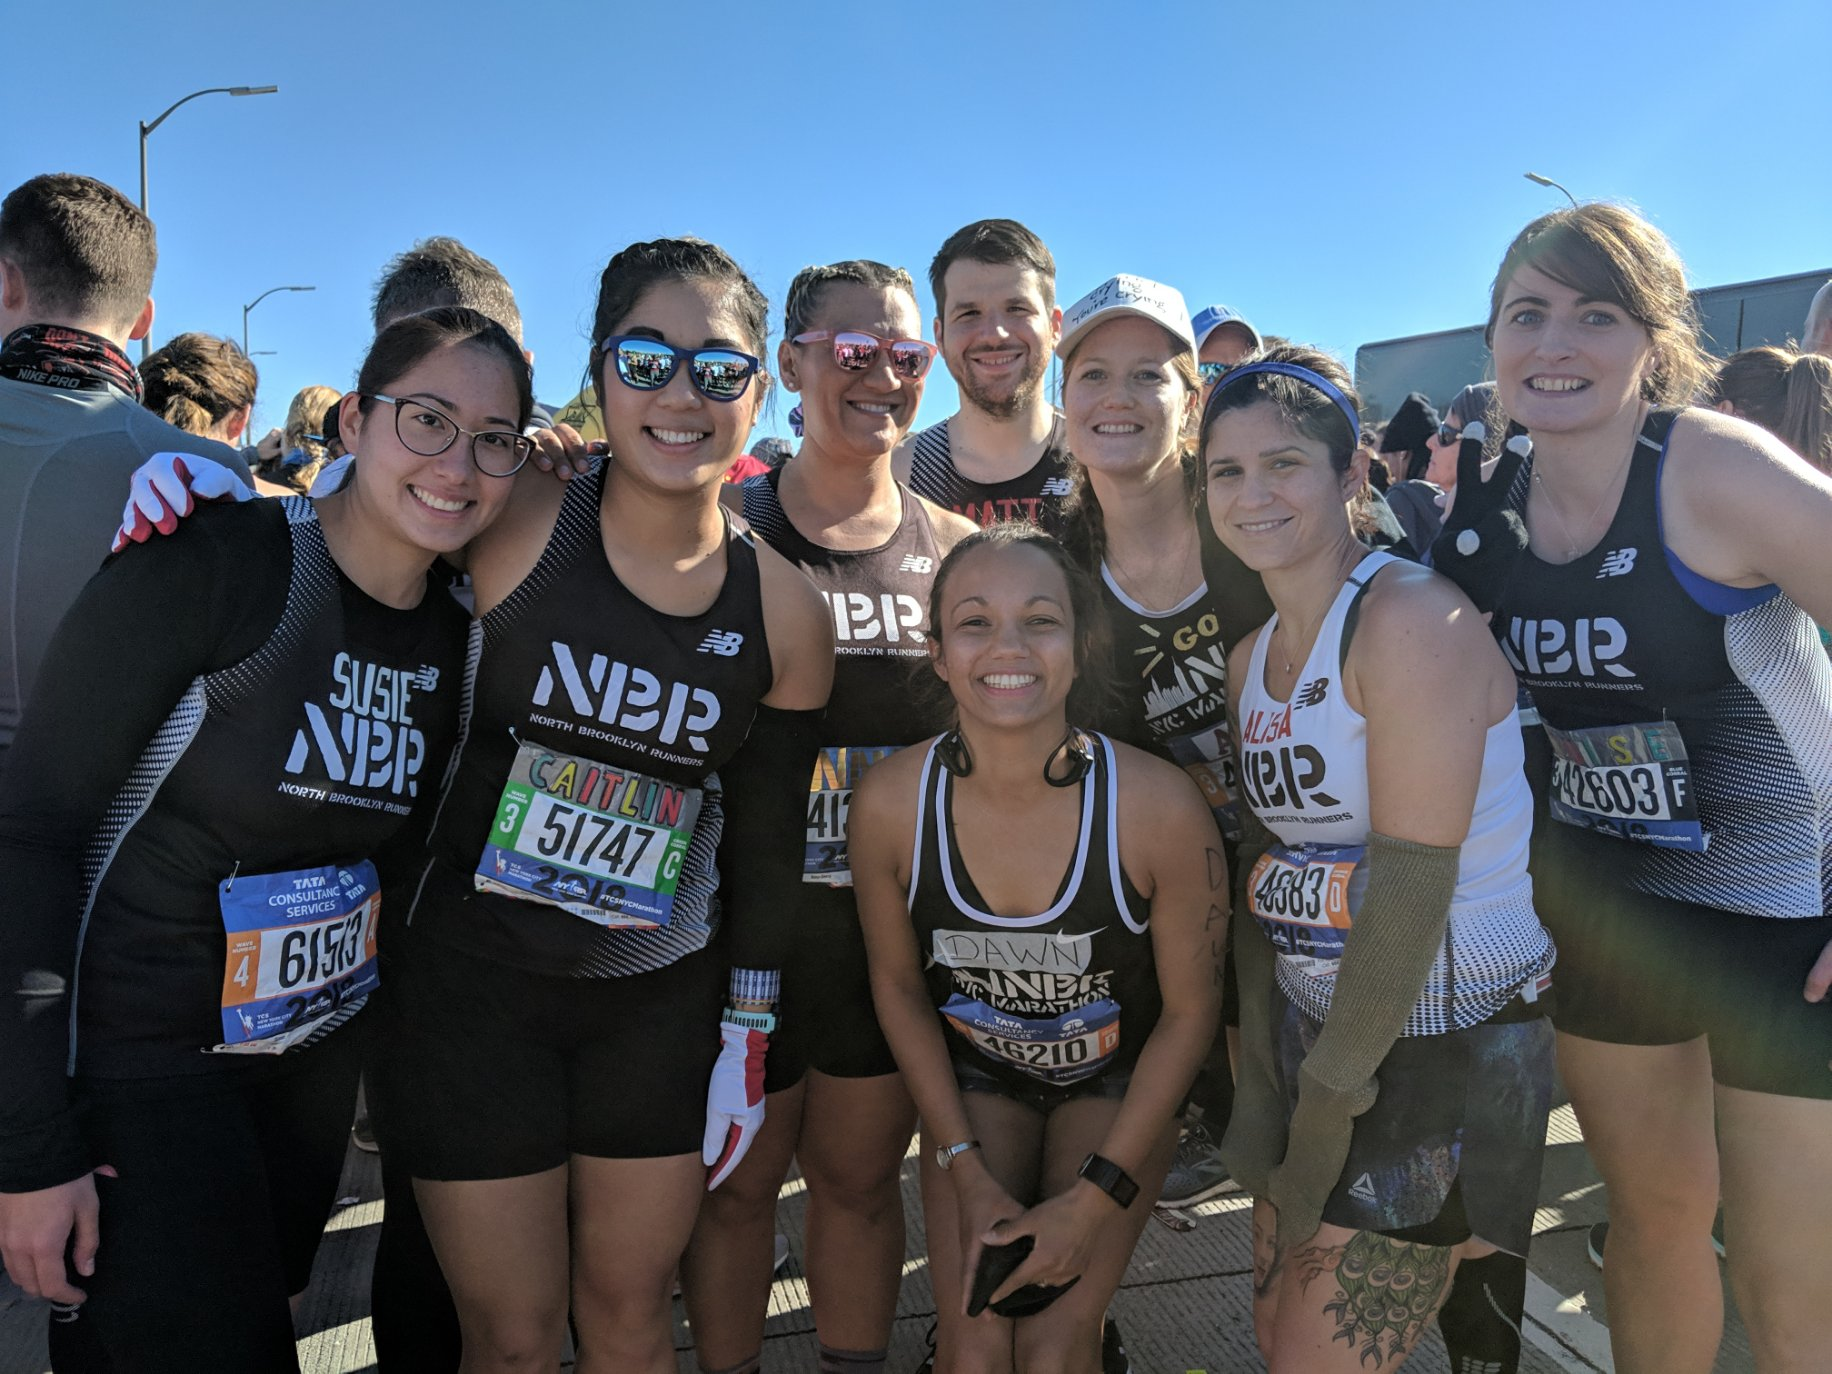 Smiling with an NBR crew before the NYC Marathon